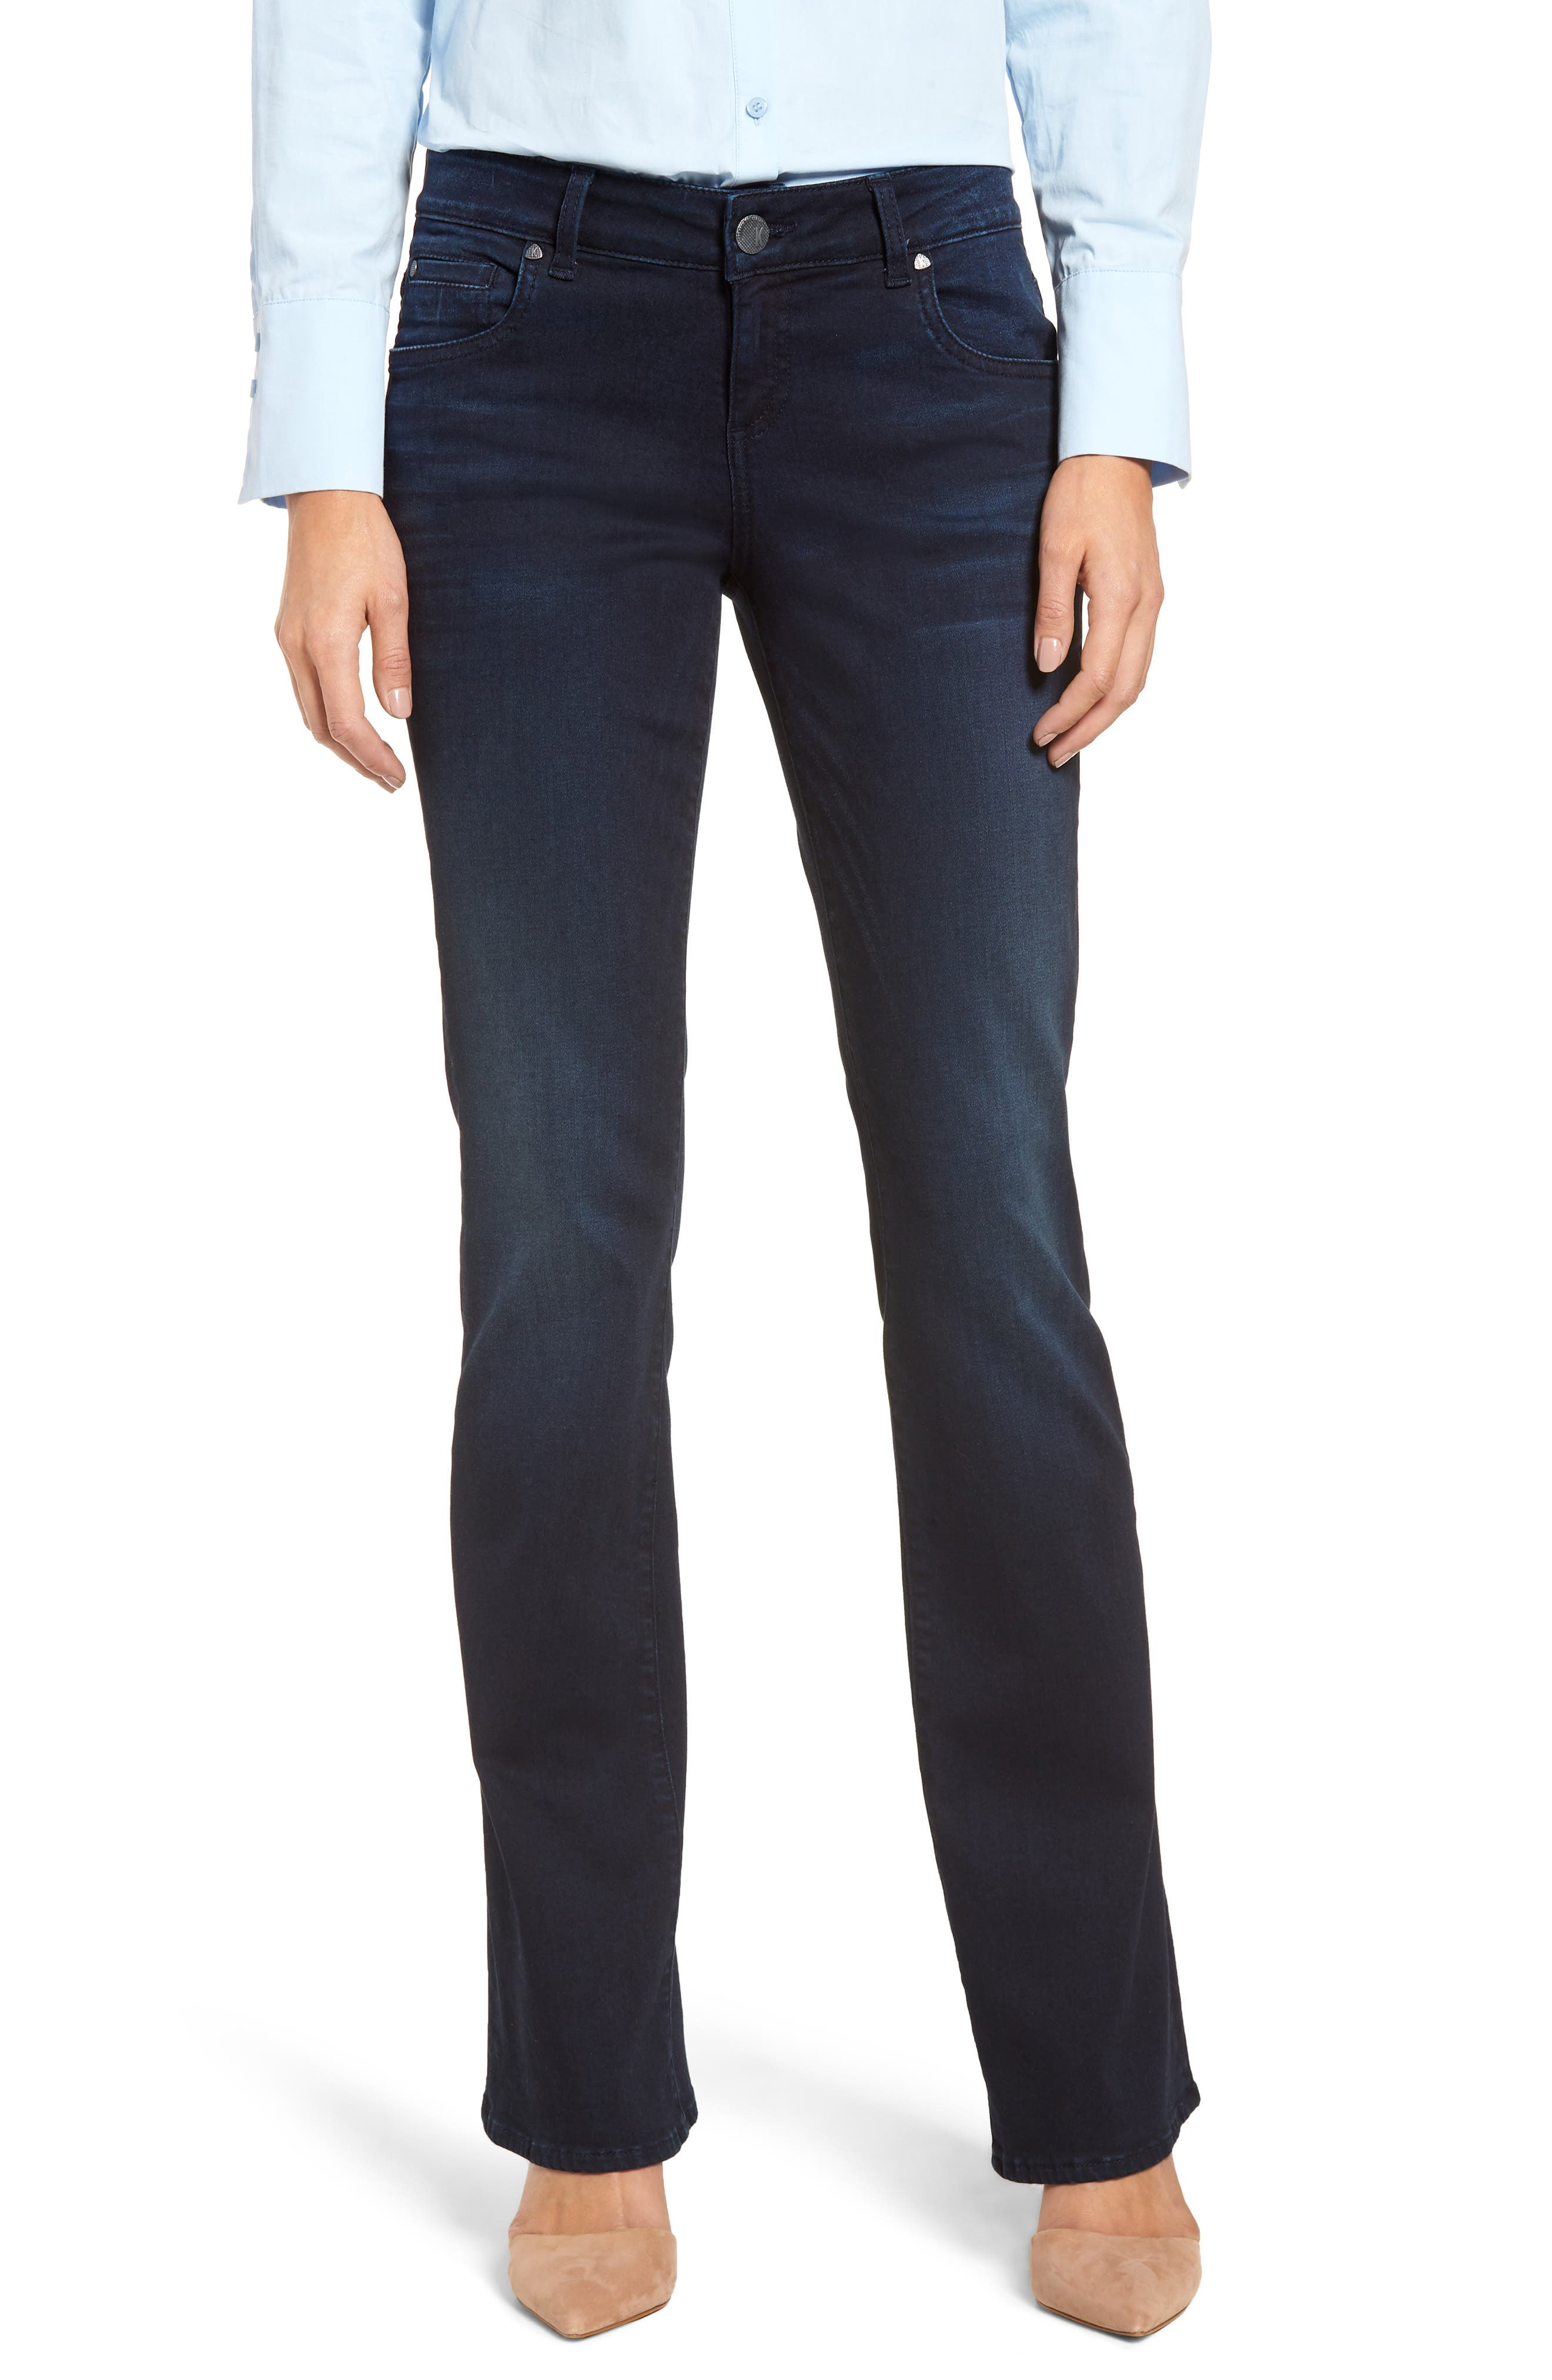 KUT FROM THE KLOTH Natalie Stretch Bootleg Jeans, Main, color, LIBERATING